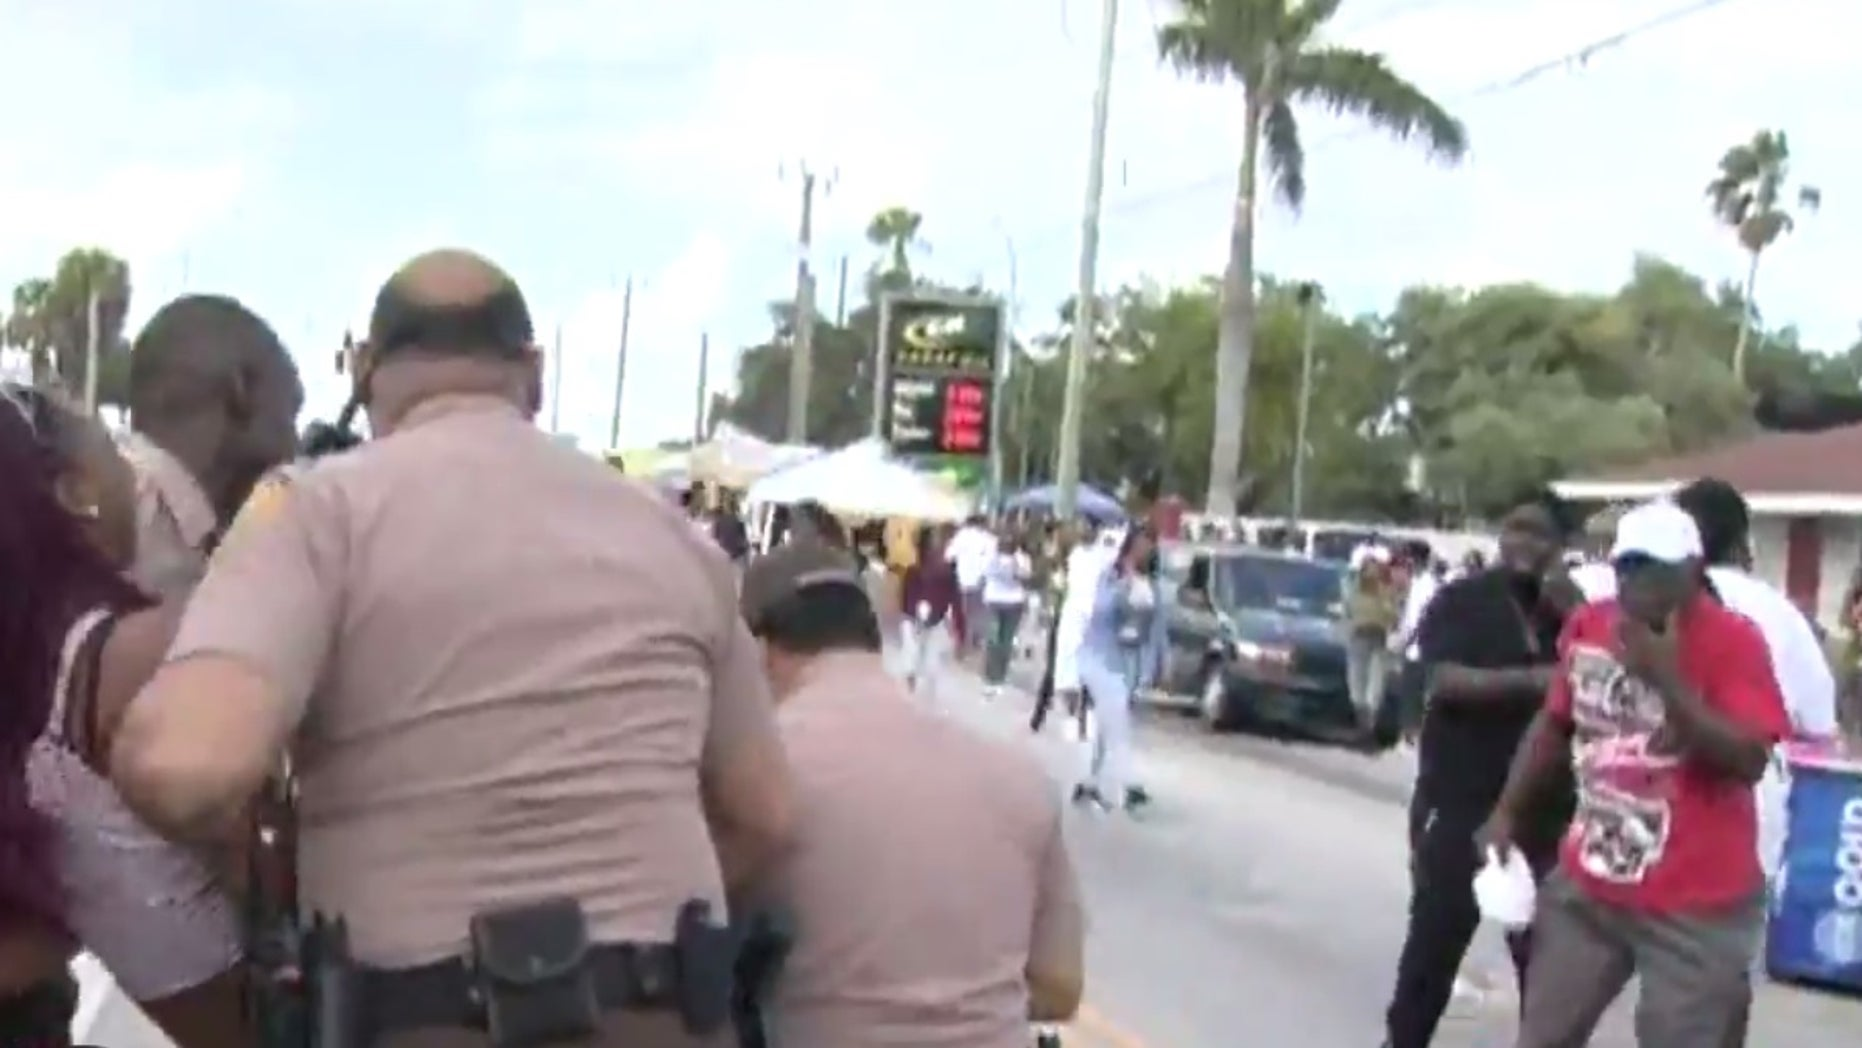 Police carrying away a woman who appeared to be hurt.